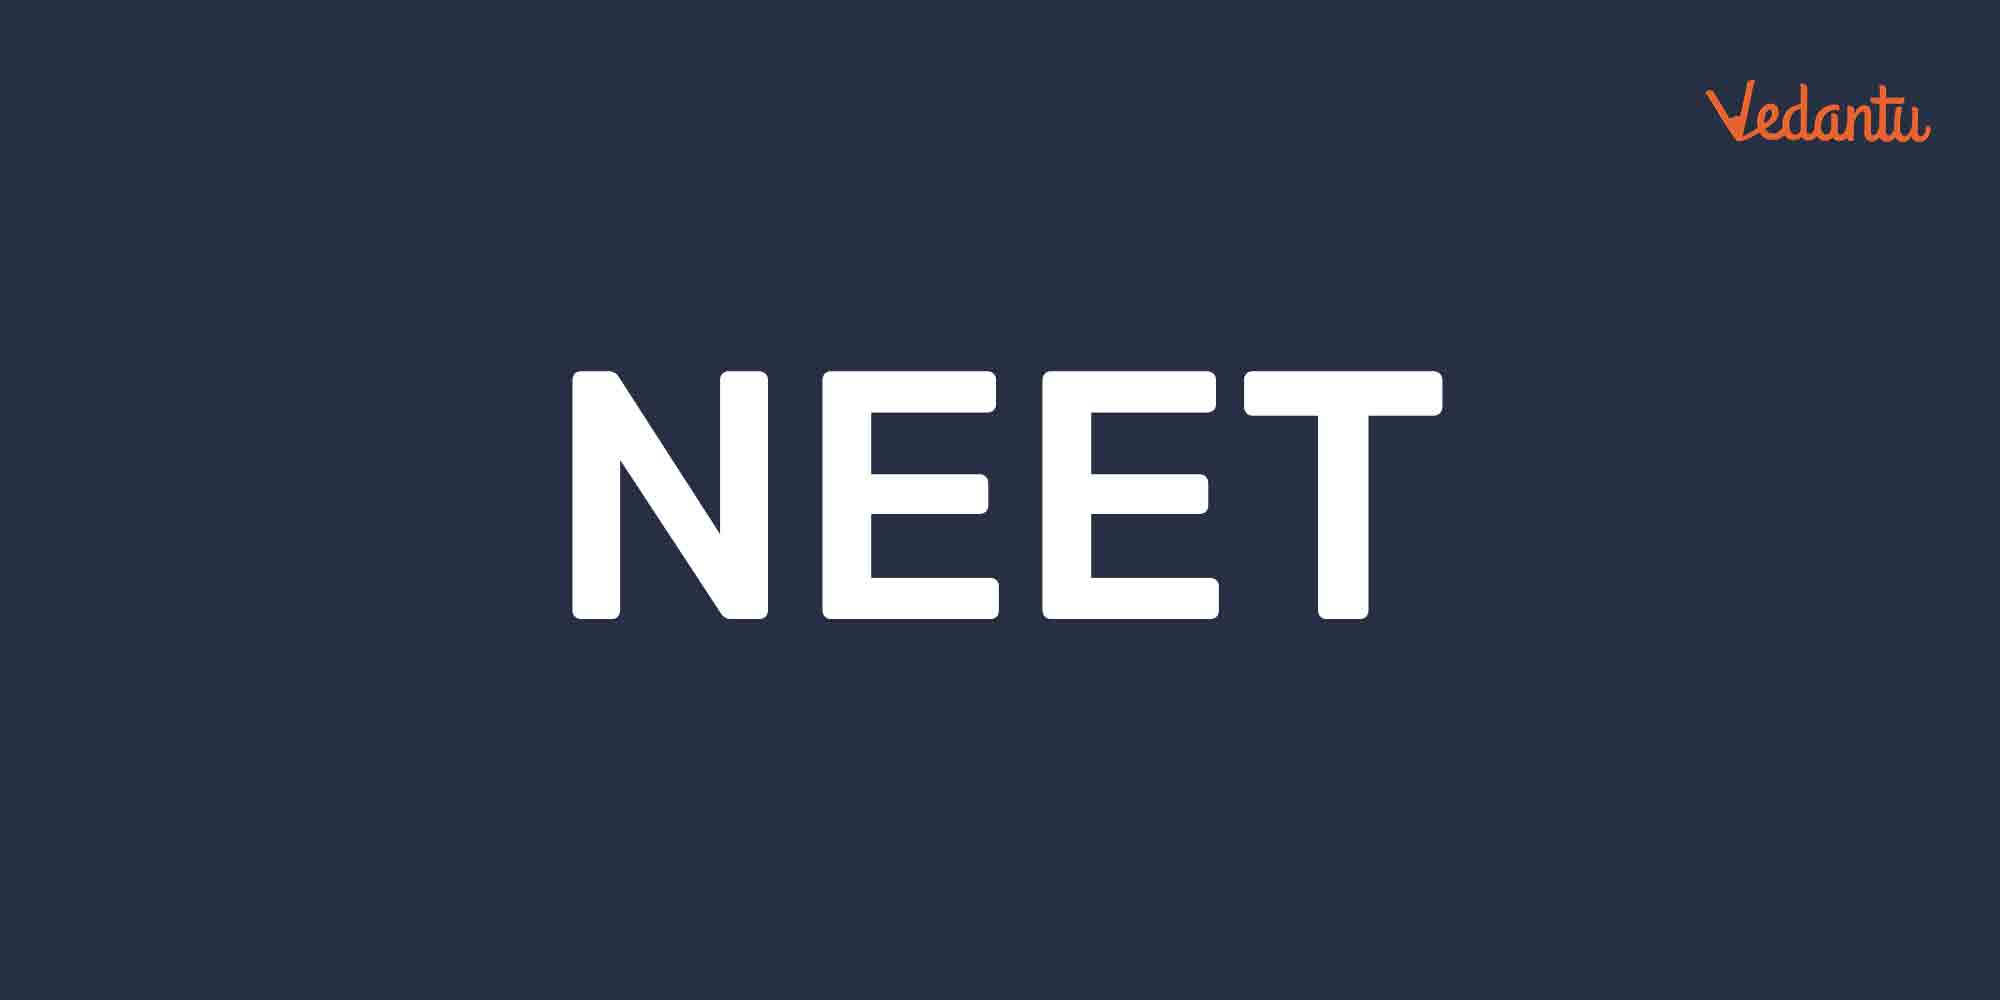 What are the Main Disadvantages of Merging AIIMS and JIPMER With NEET?